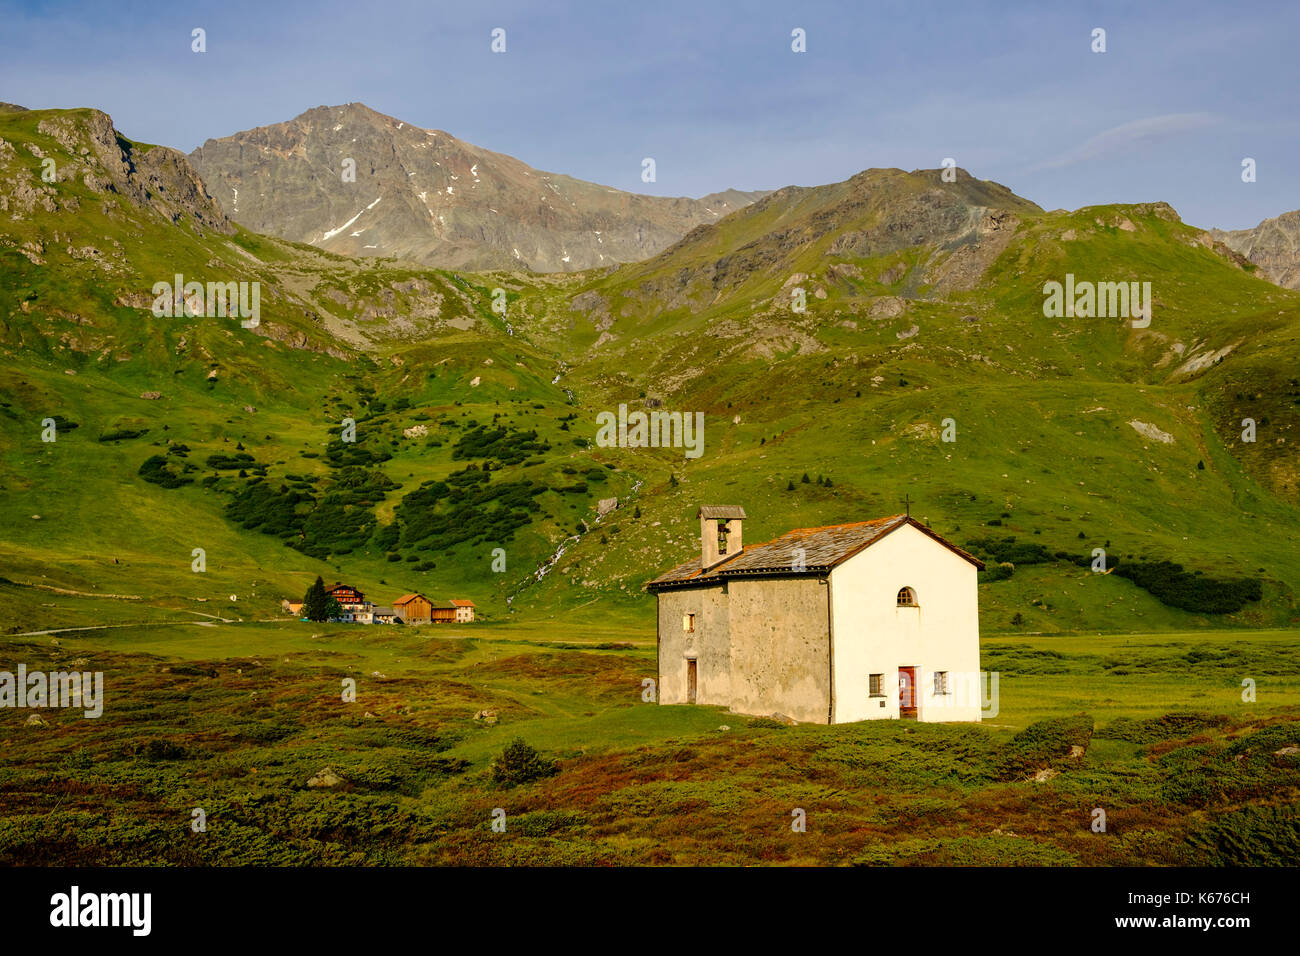 The Chapel Sun Roc, green meadows, bushes, farmhouses and mountain slopes at Alp Flix - Stock Image